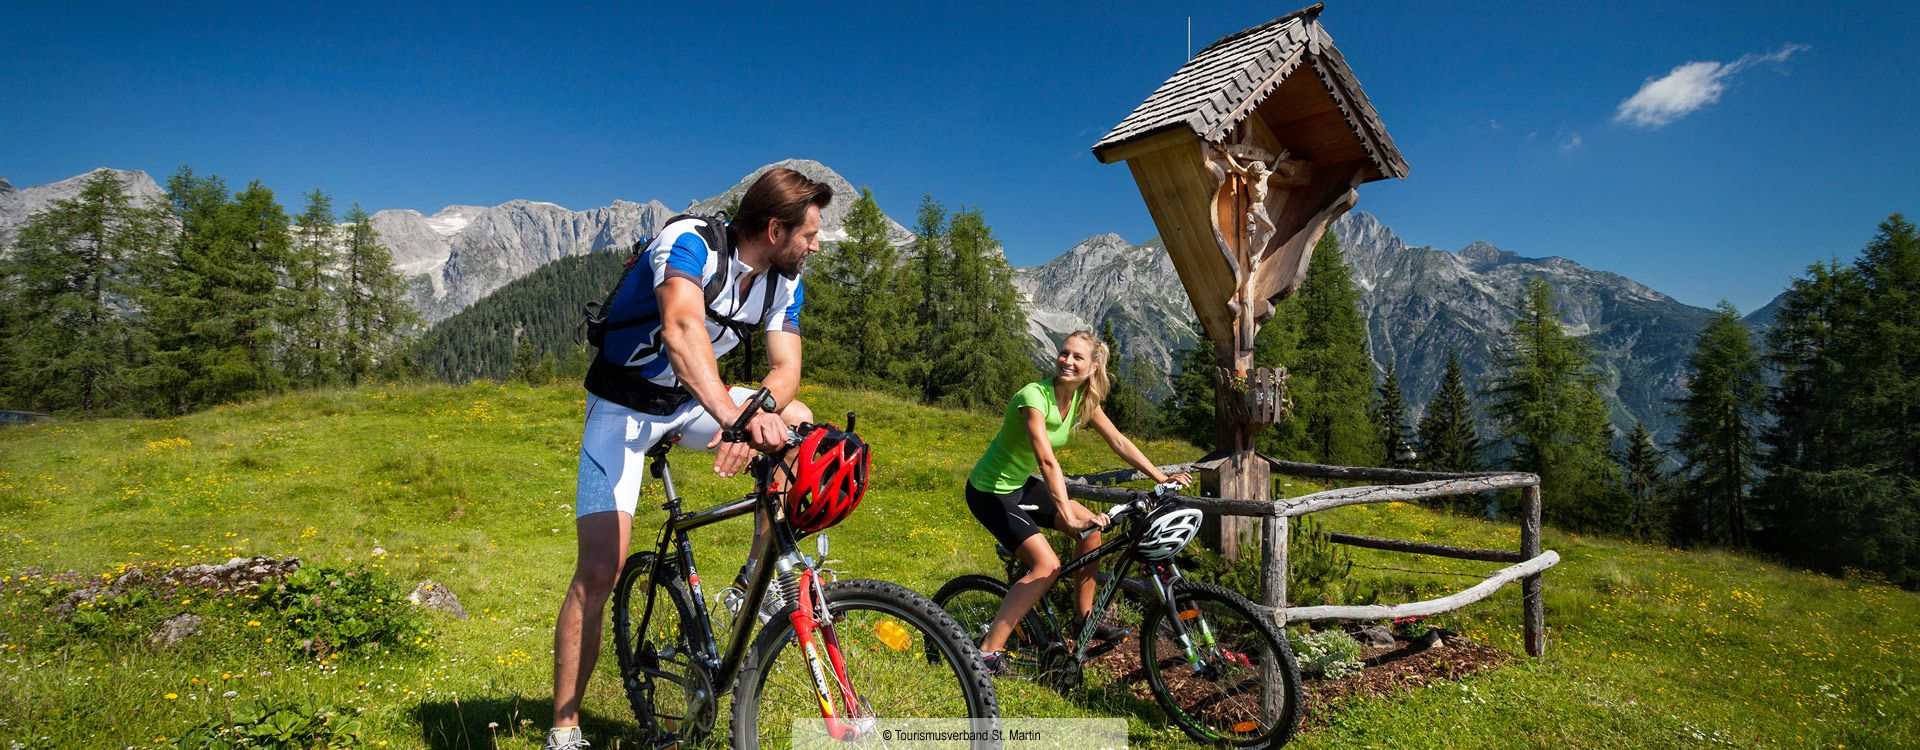 Mountainbiken Stmartin